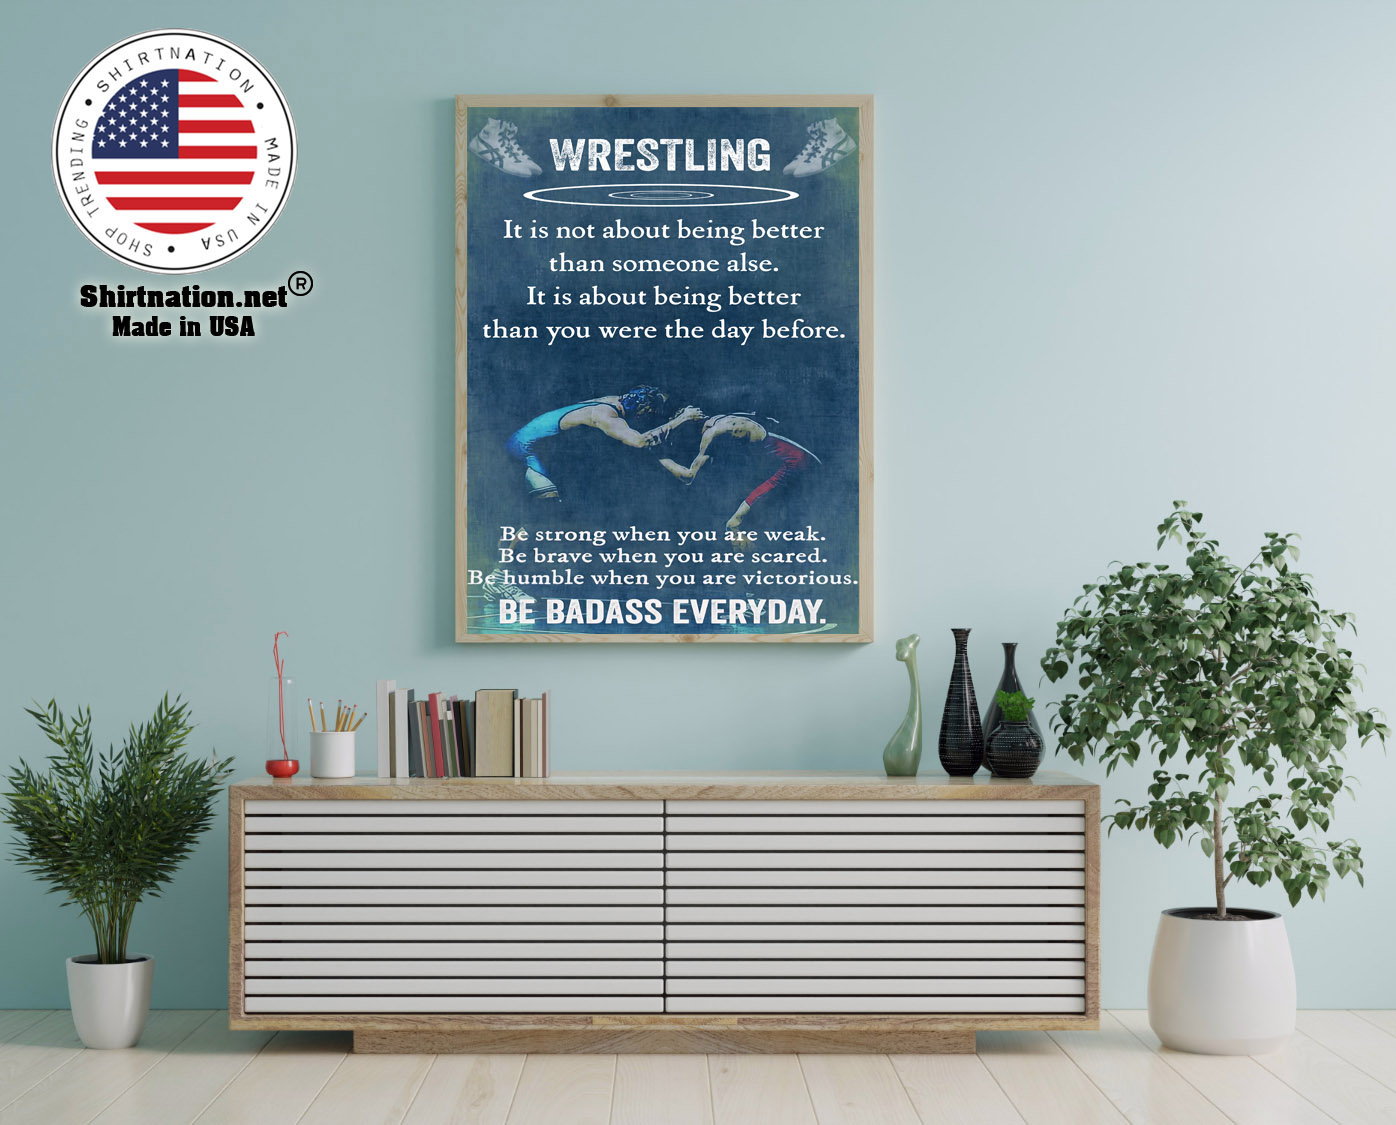 Wrestling it is not about being better than someine else poster 12